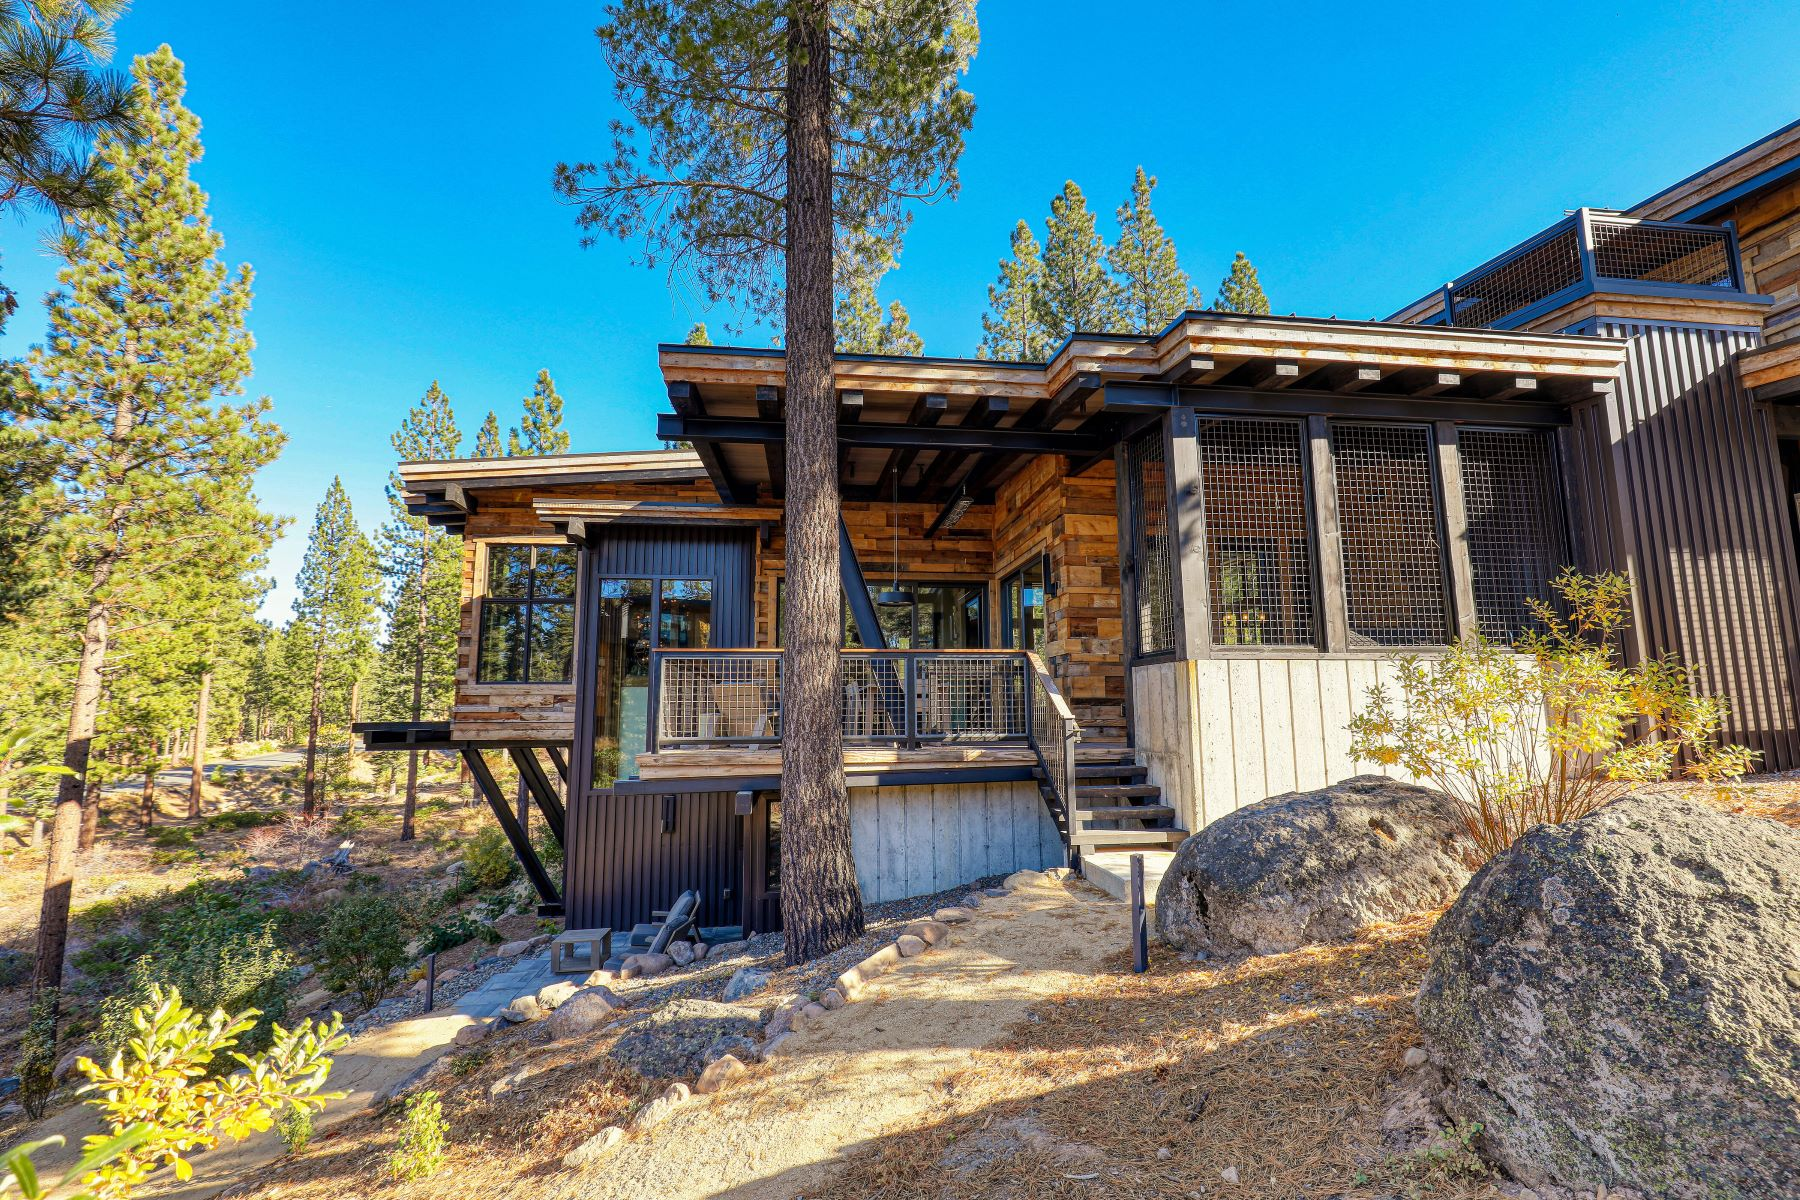 Additional photo for property listing at 9512 Wawona Court, Truckee, CA 96161 9512 Wawona Court Truckee, California 96161 United States